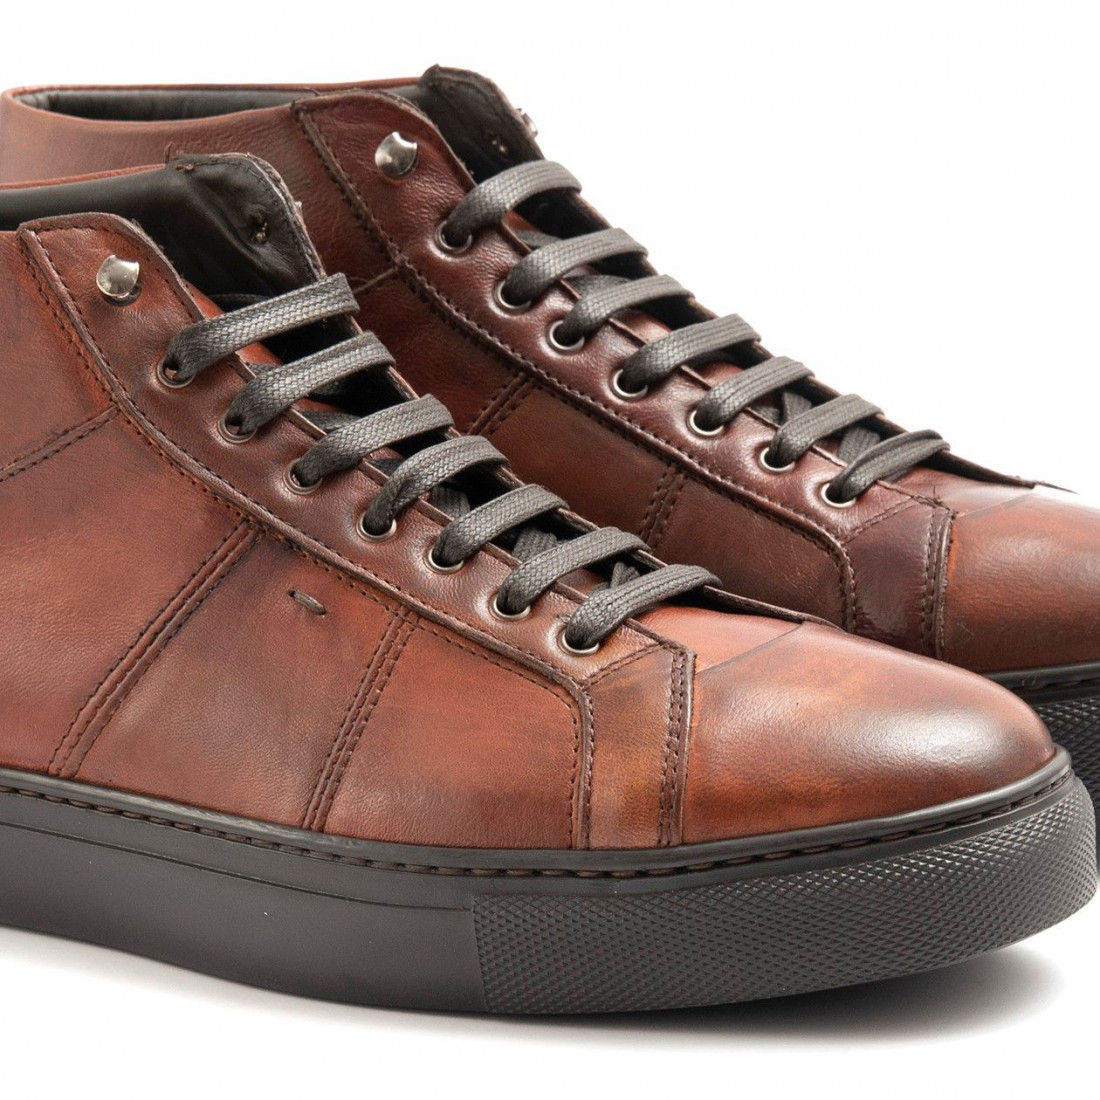 lace up ankle boots man sangiorgio 7503montone cuoio 6510